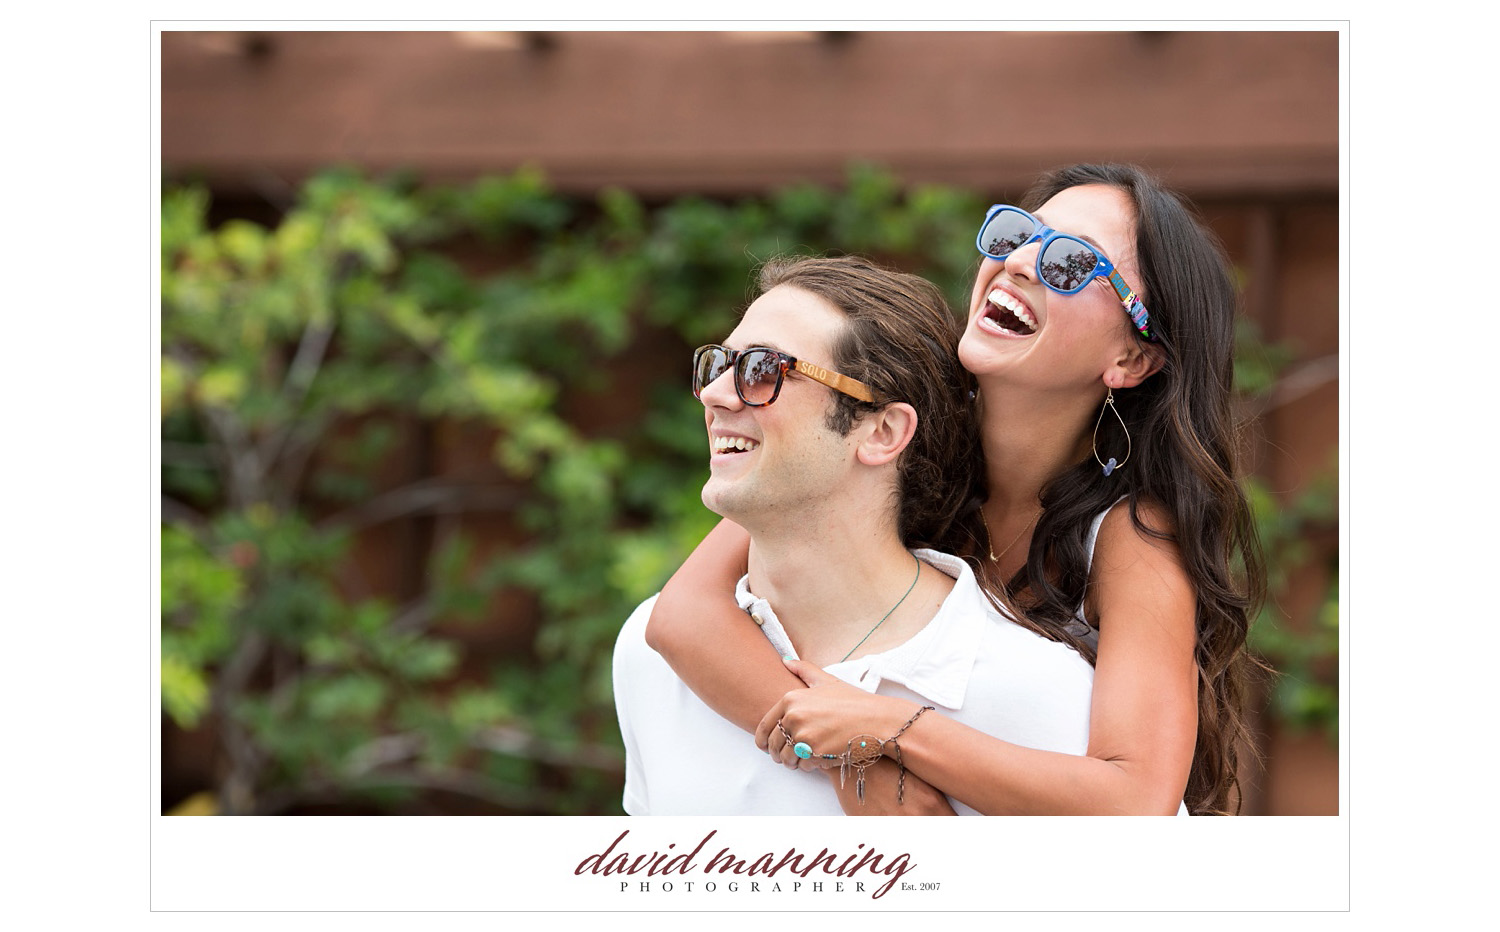 SOLO-Eyewear--Commercial-Editorial-Photos-David-Manning-Photographers-0017.jpg